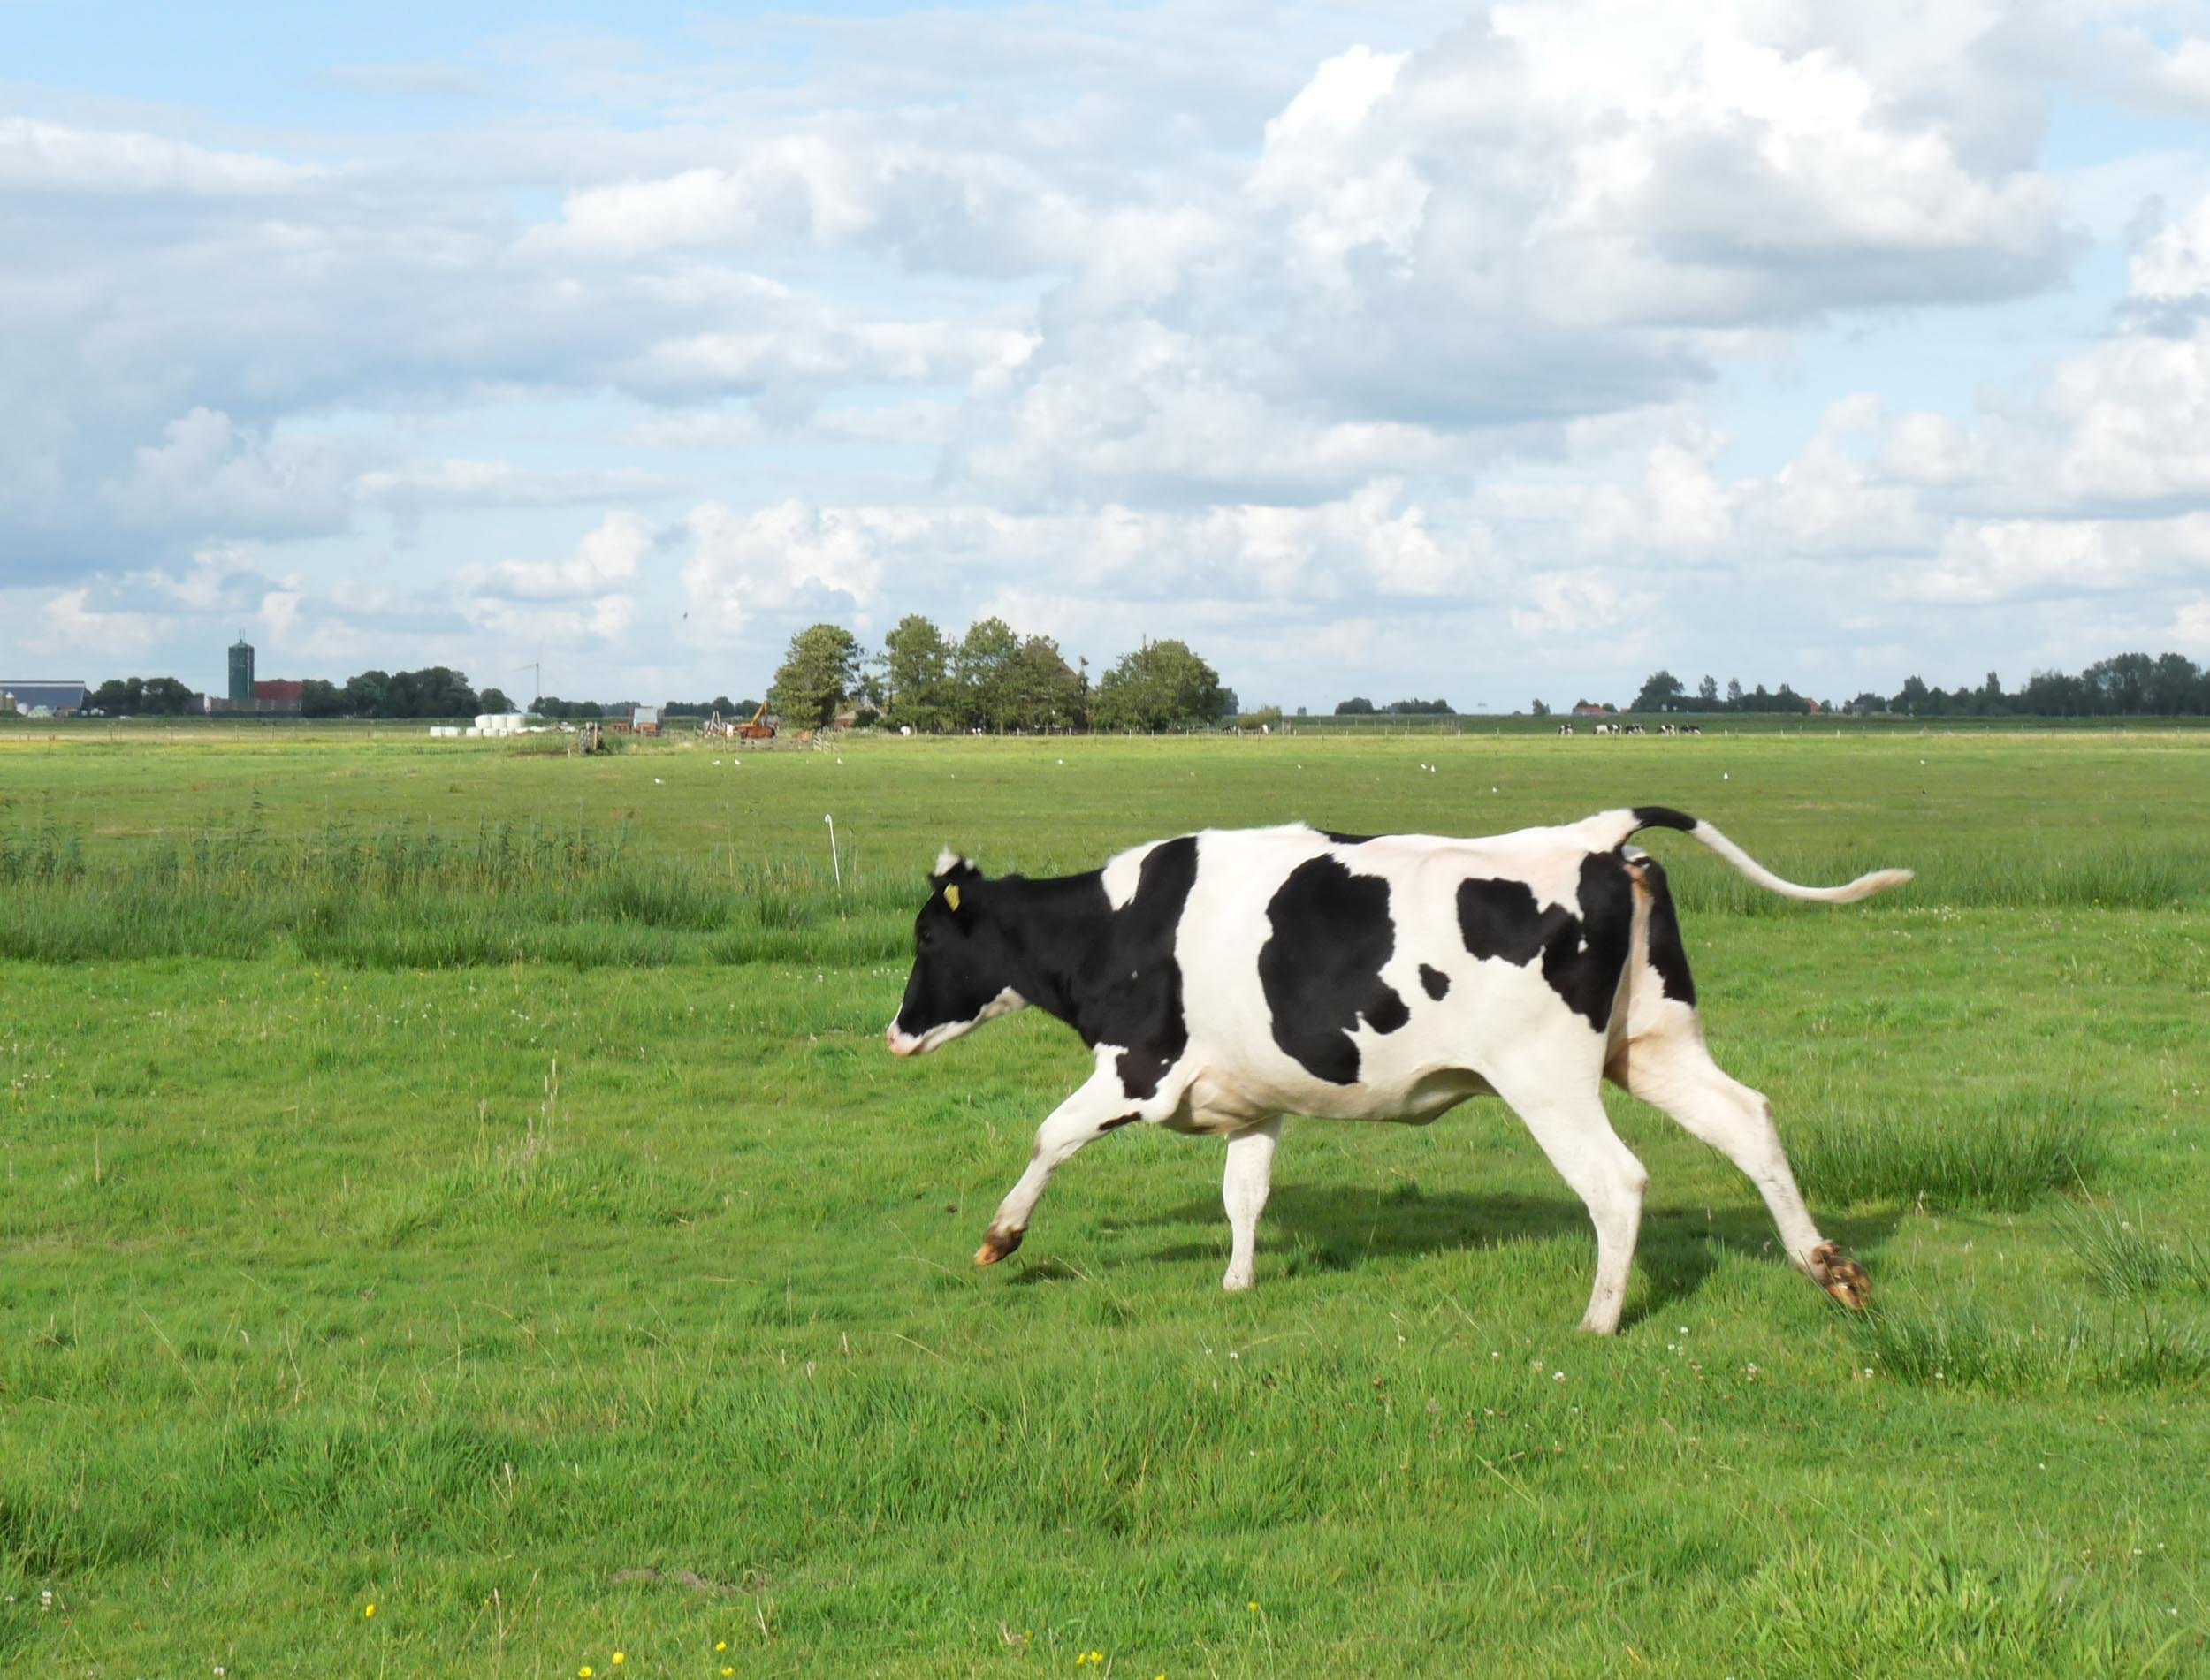 Cows in fields - in search of the facts | UK World Animal Protection